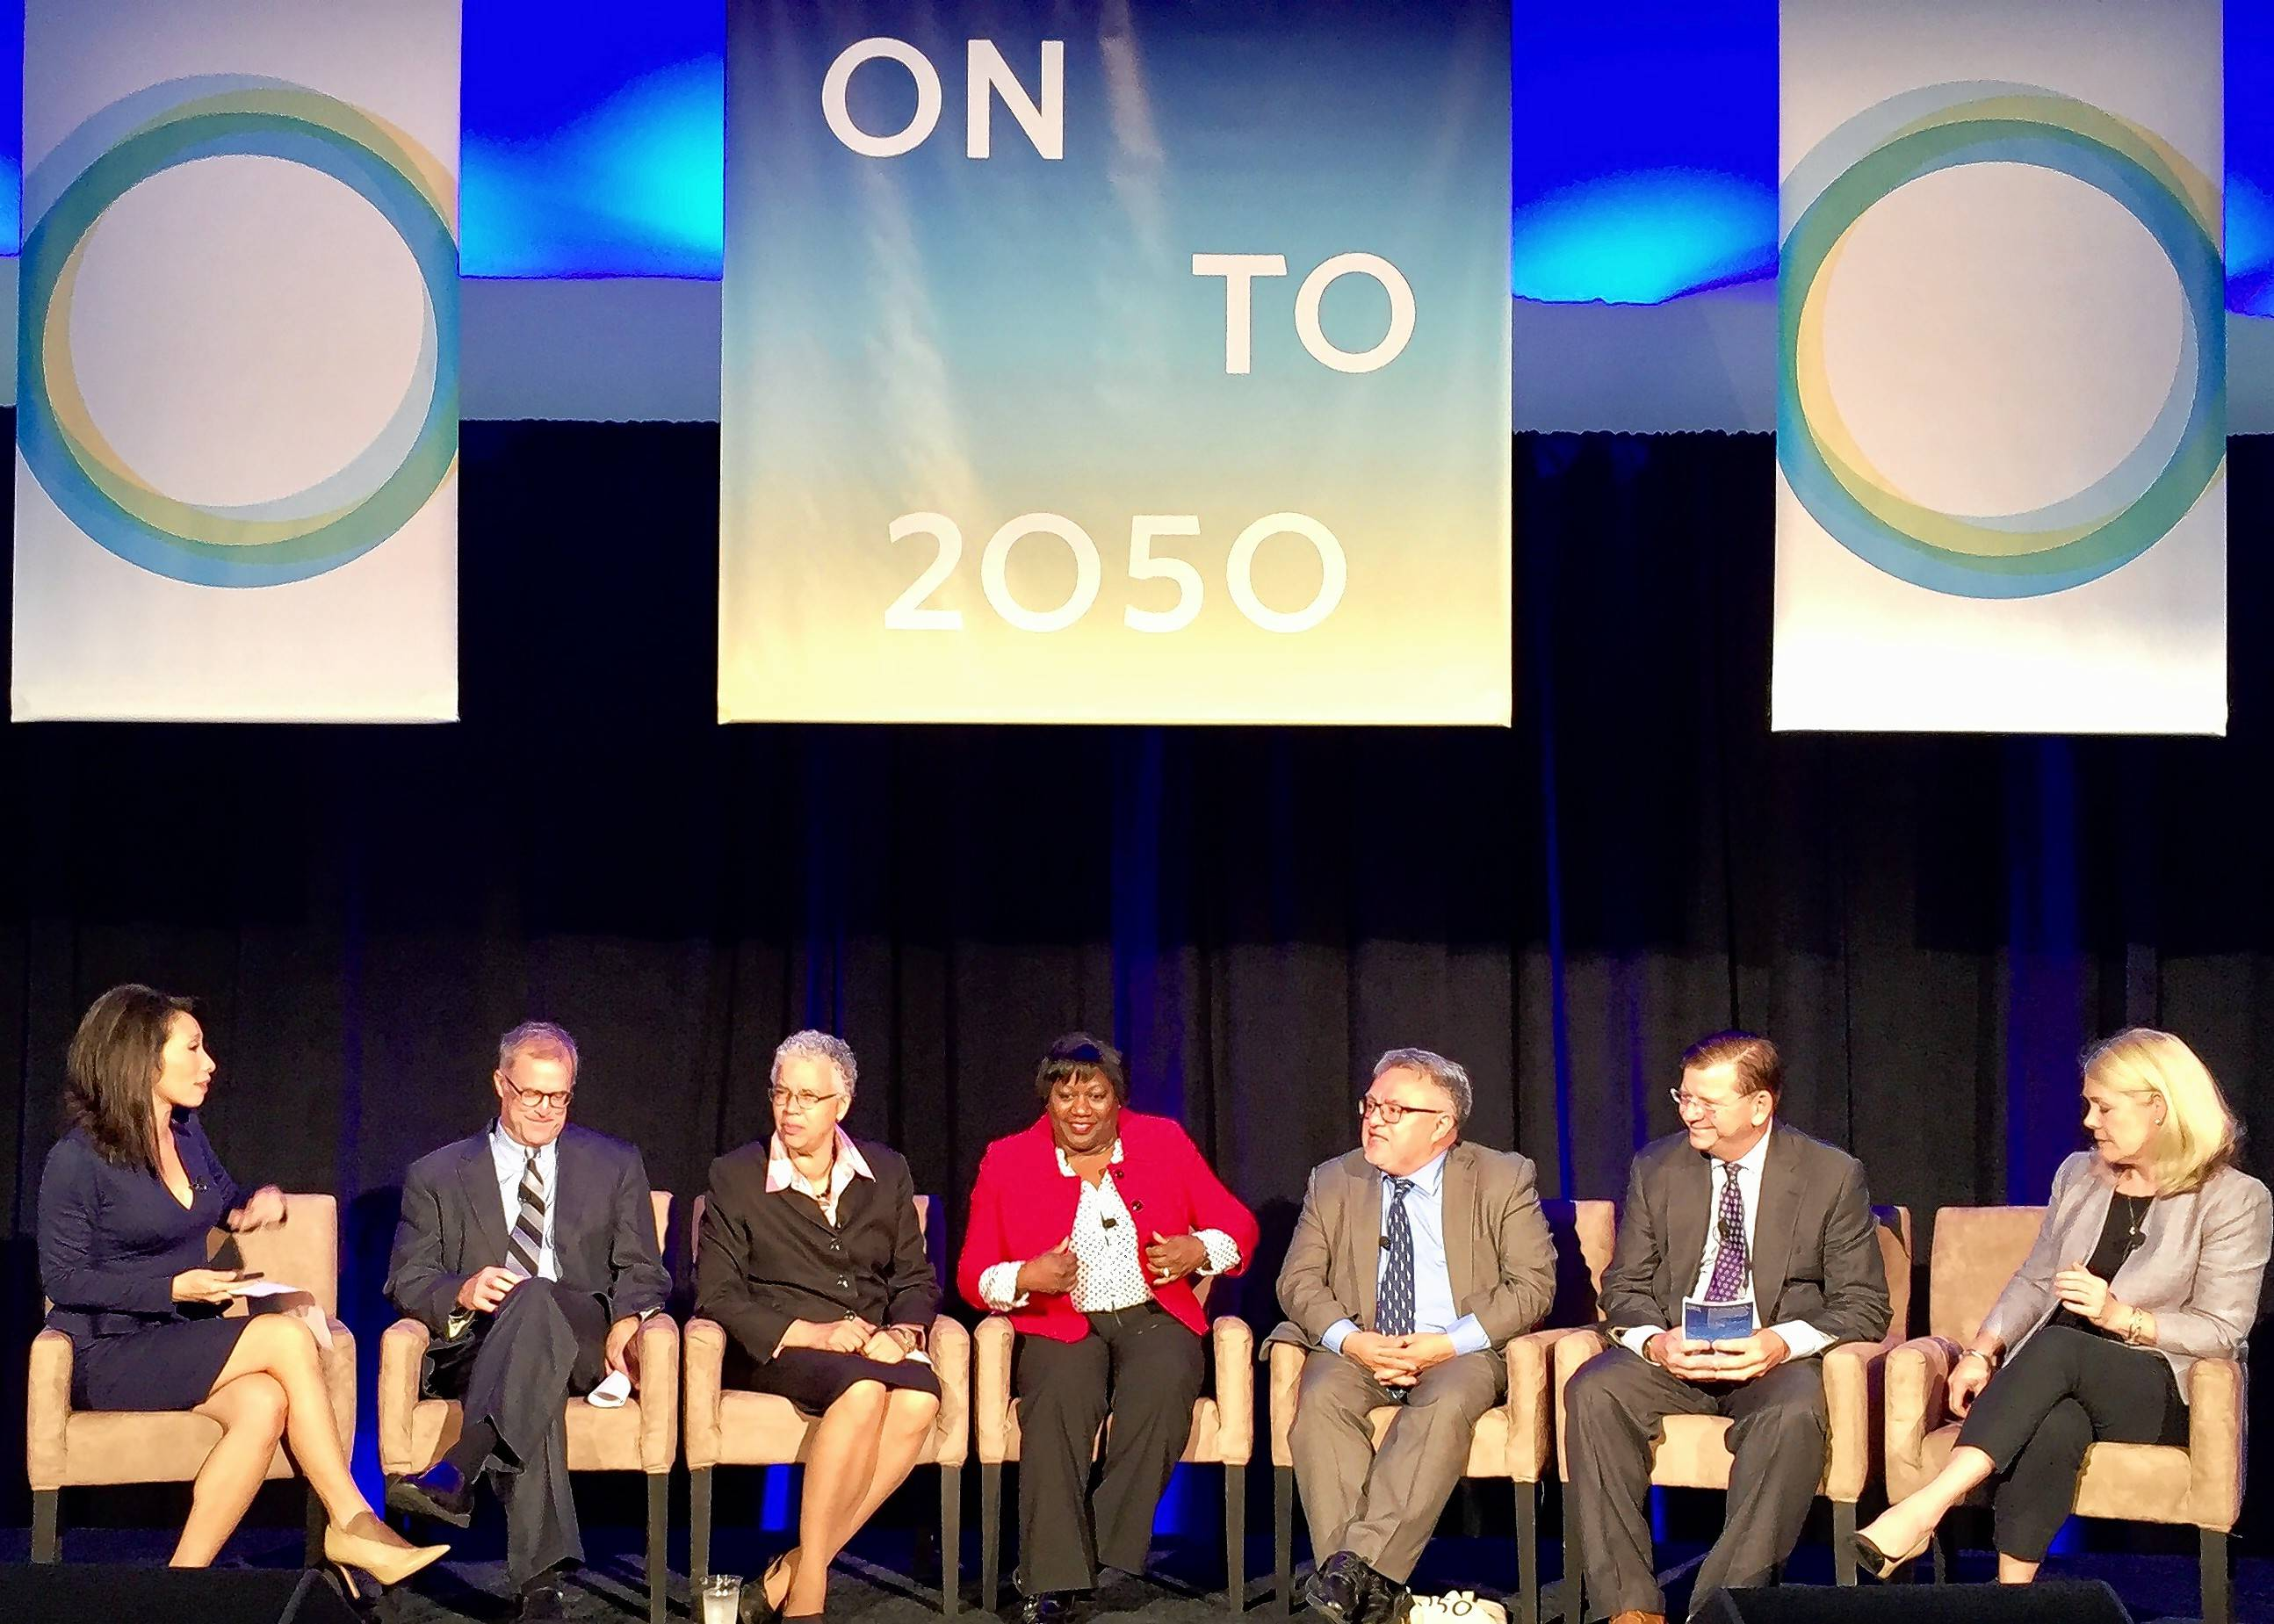 ABC 7 anchor Judy Hsu, on the left end, leads a discussion on the new regional plan ON TO 2050 with, from left, DuPage Chairman Dan Cronin, Cook County President Toni Preckwinkle, ComEd executive Melissa Y. Washington, Resurrection Project founder Raul Raymundo, Civic Foundation President Lawrence Msall and RTA Executive Director Leanne Redden.